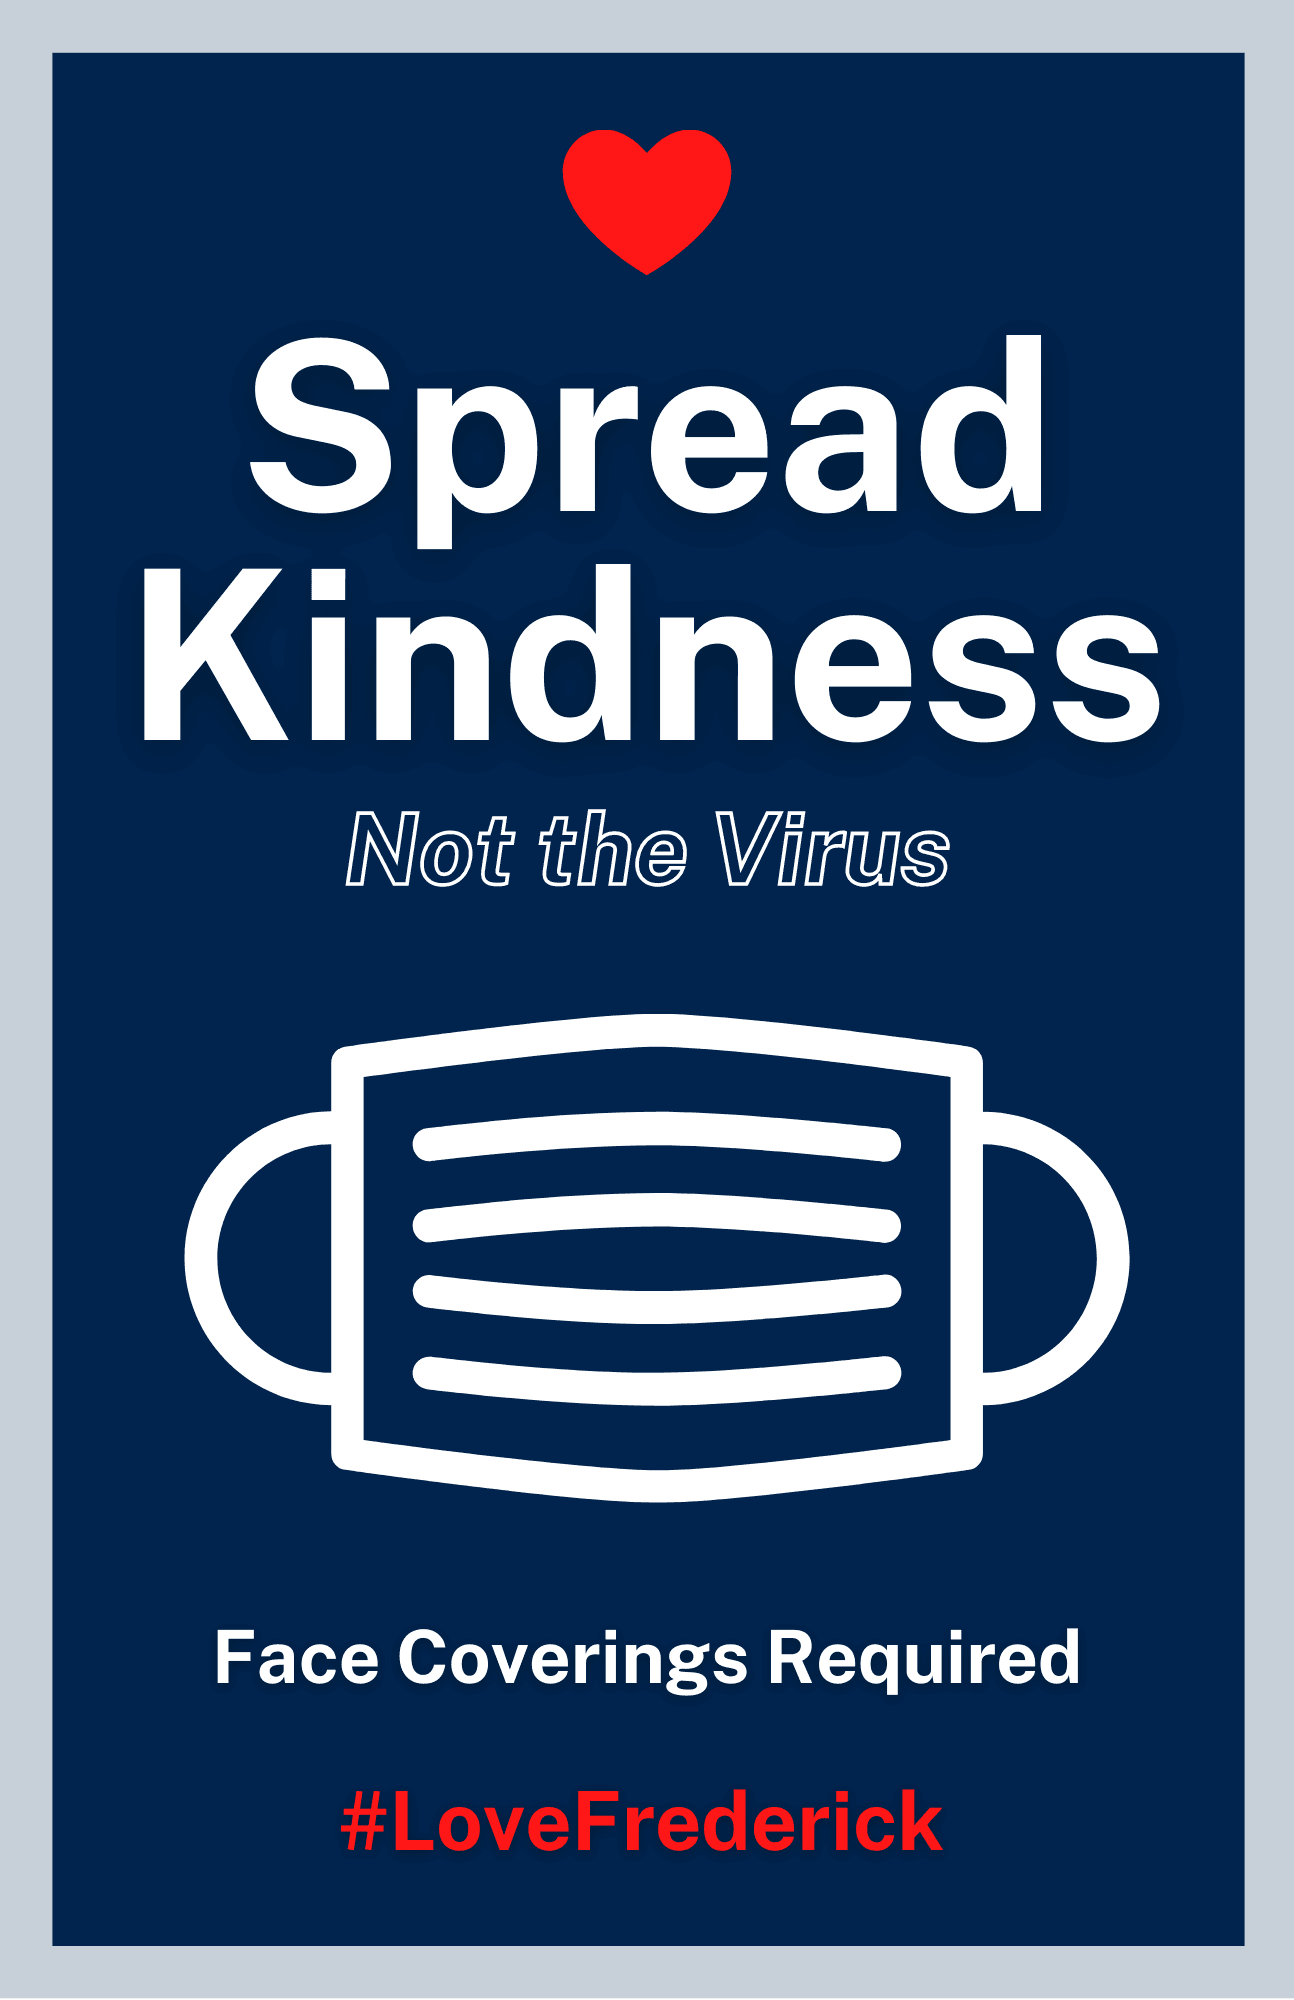 Spread Kindness poster - Face coverings required